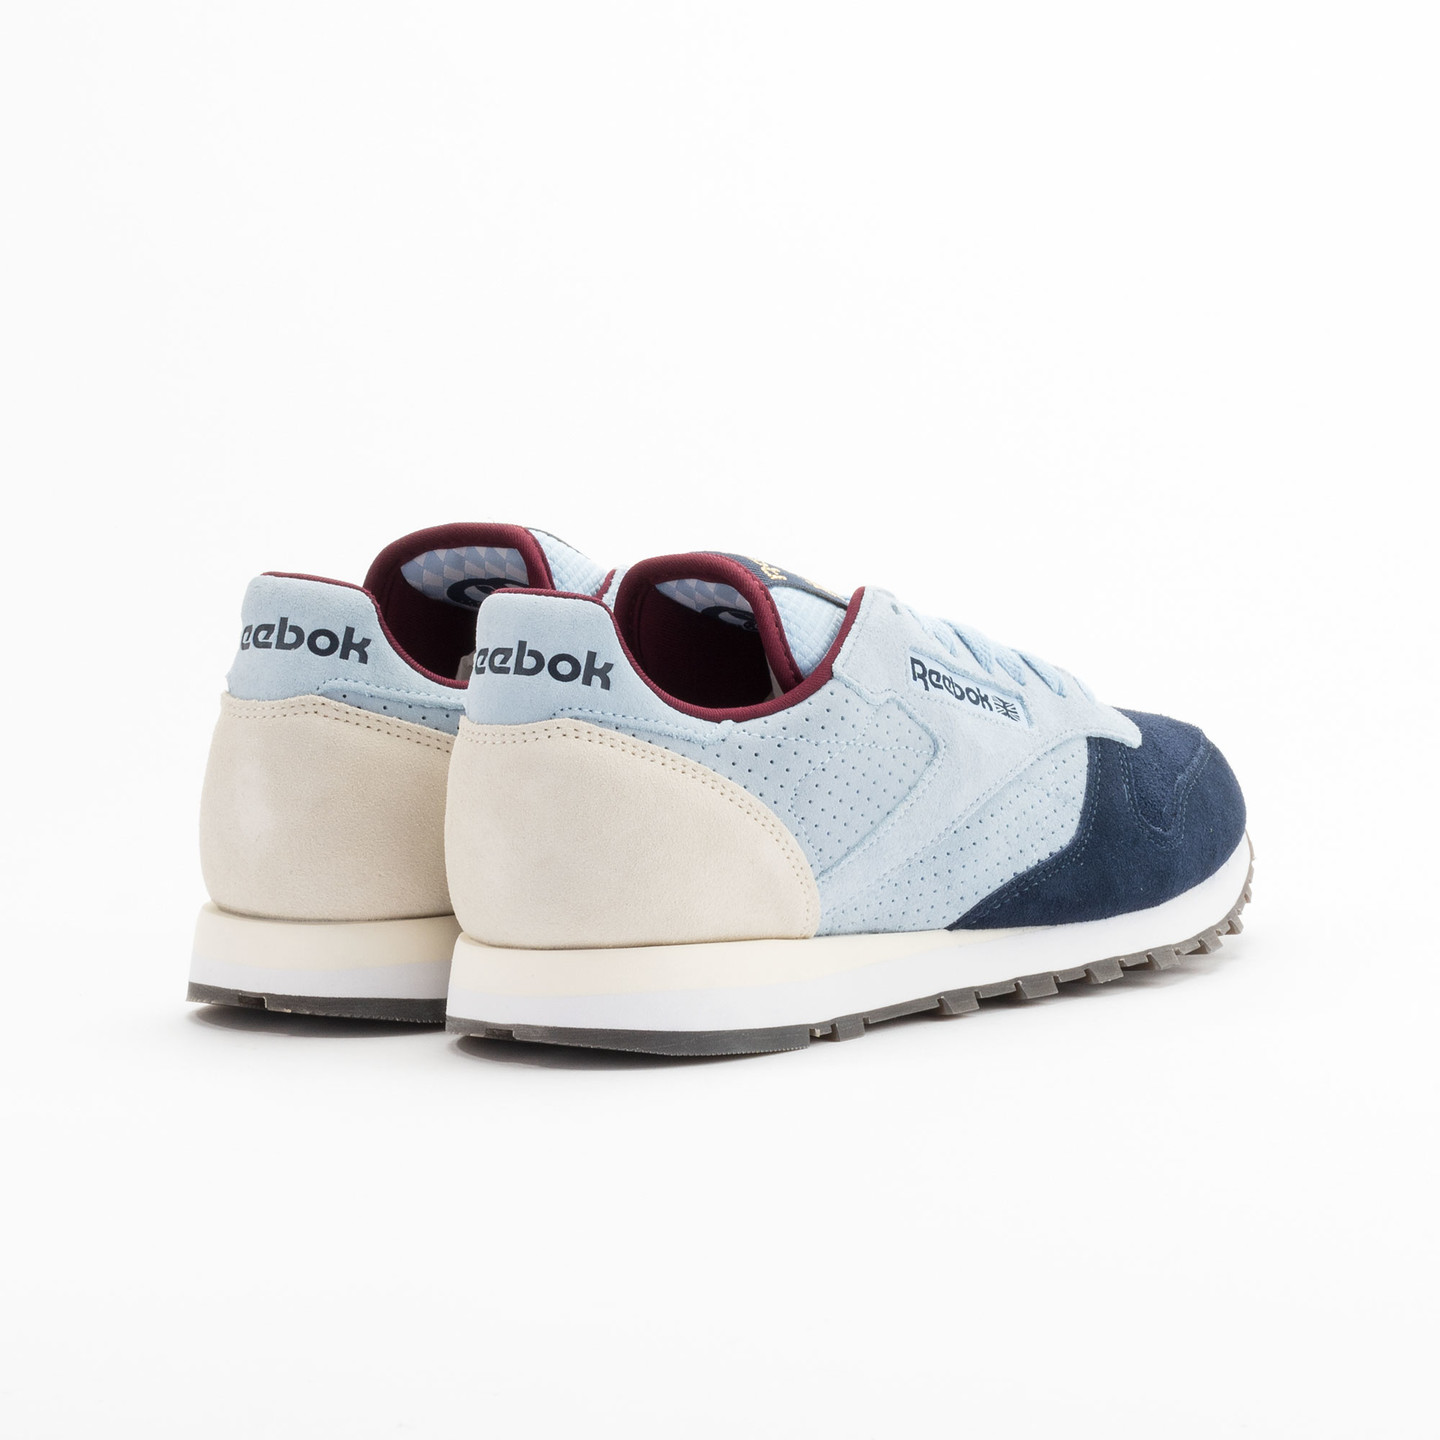 Reebok Classic Leather Int Navy / Light Blue / Sand V66829-42.5